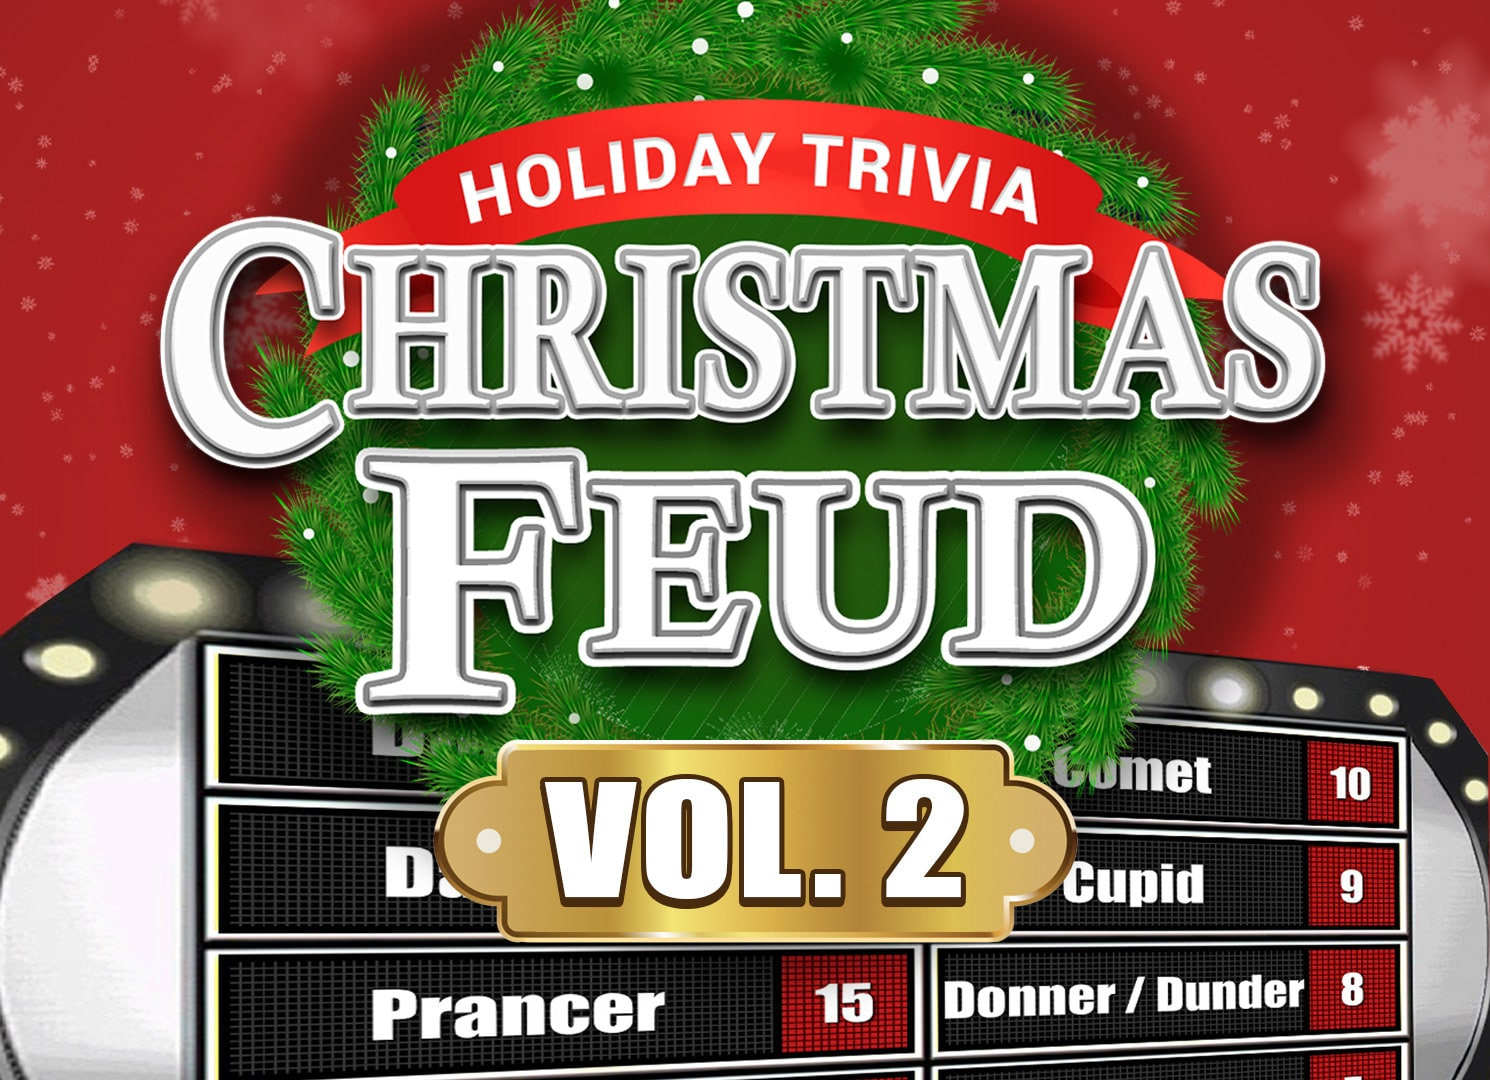 Christmas Feud Vol. 2 Family Feud Trivia Powerpoint Game | Etsy